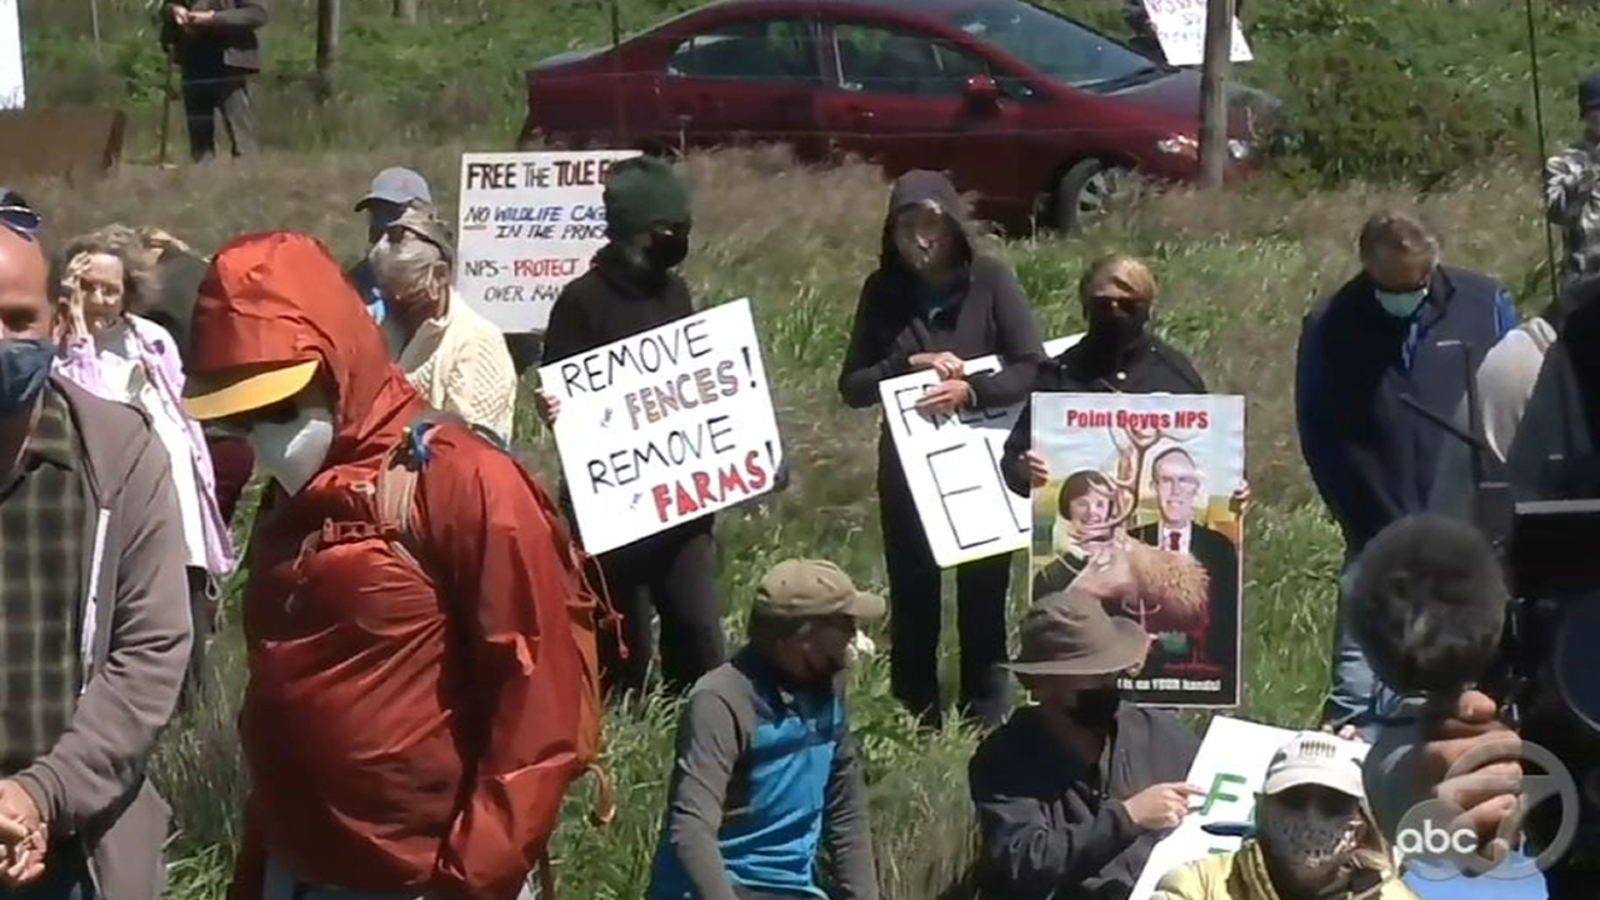 Protesters demand removal of fence after 100+ tule elk die in Point Reyes